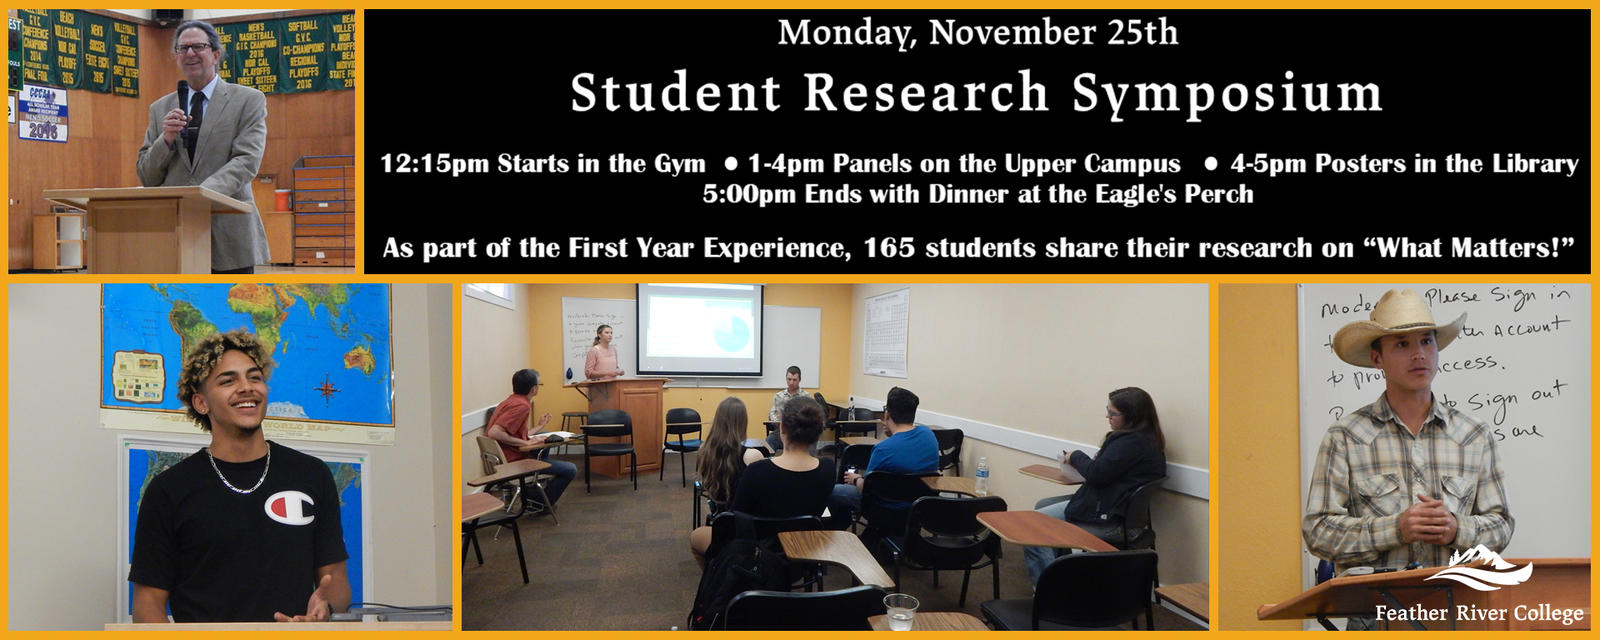 Student research symposium nov 25th 12:15pm @ gym, 1-4pm @ upper campus, 4-5pm @ library, 5pm dinner at eagles purch